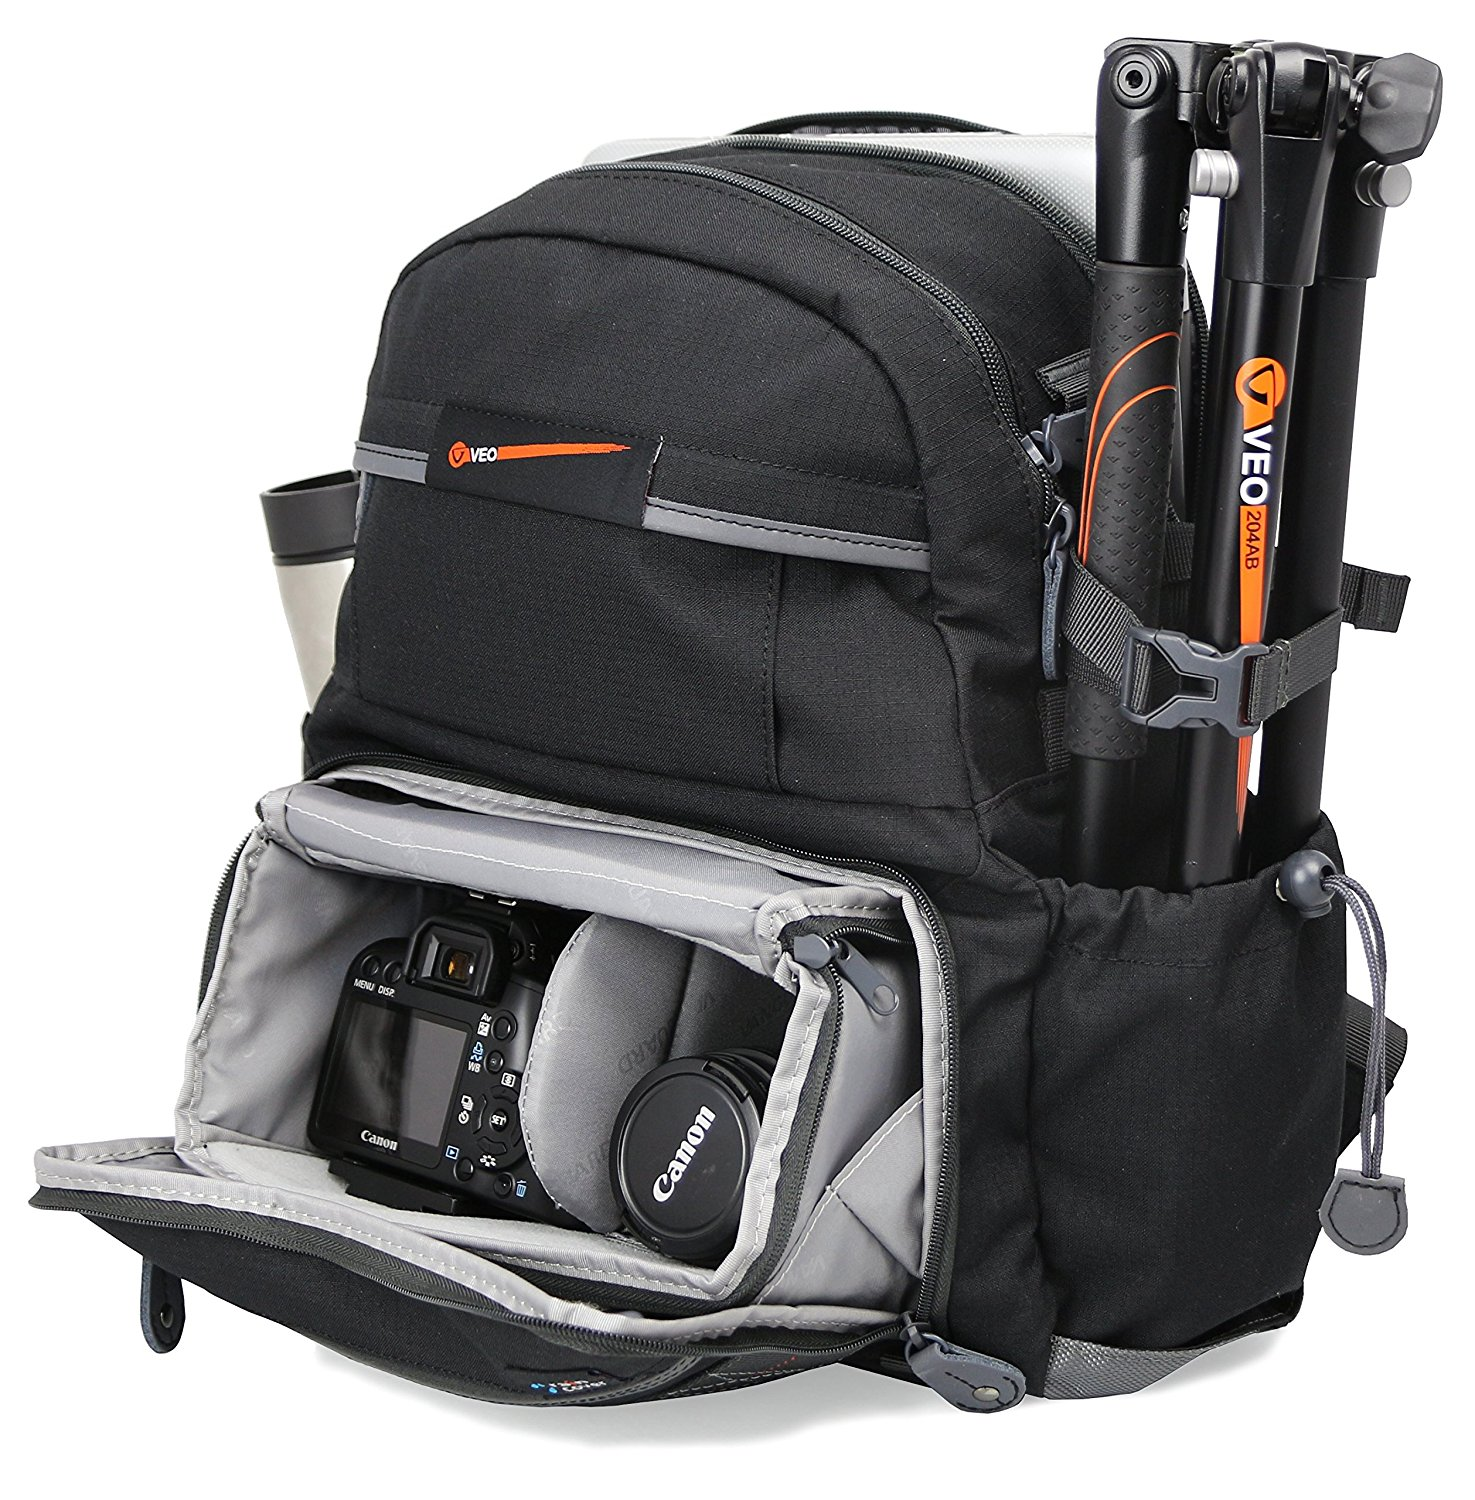 dslr bag image